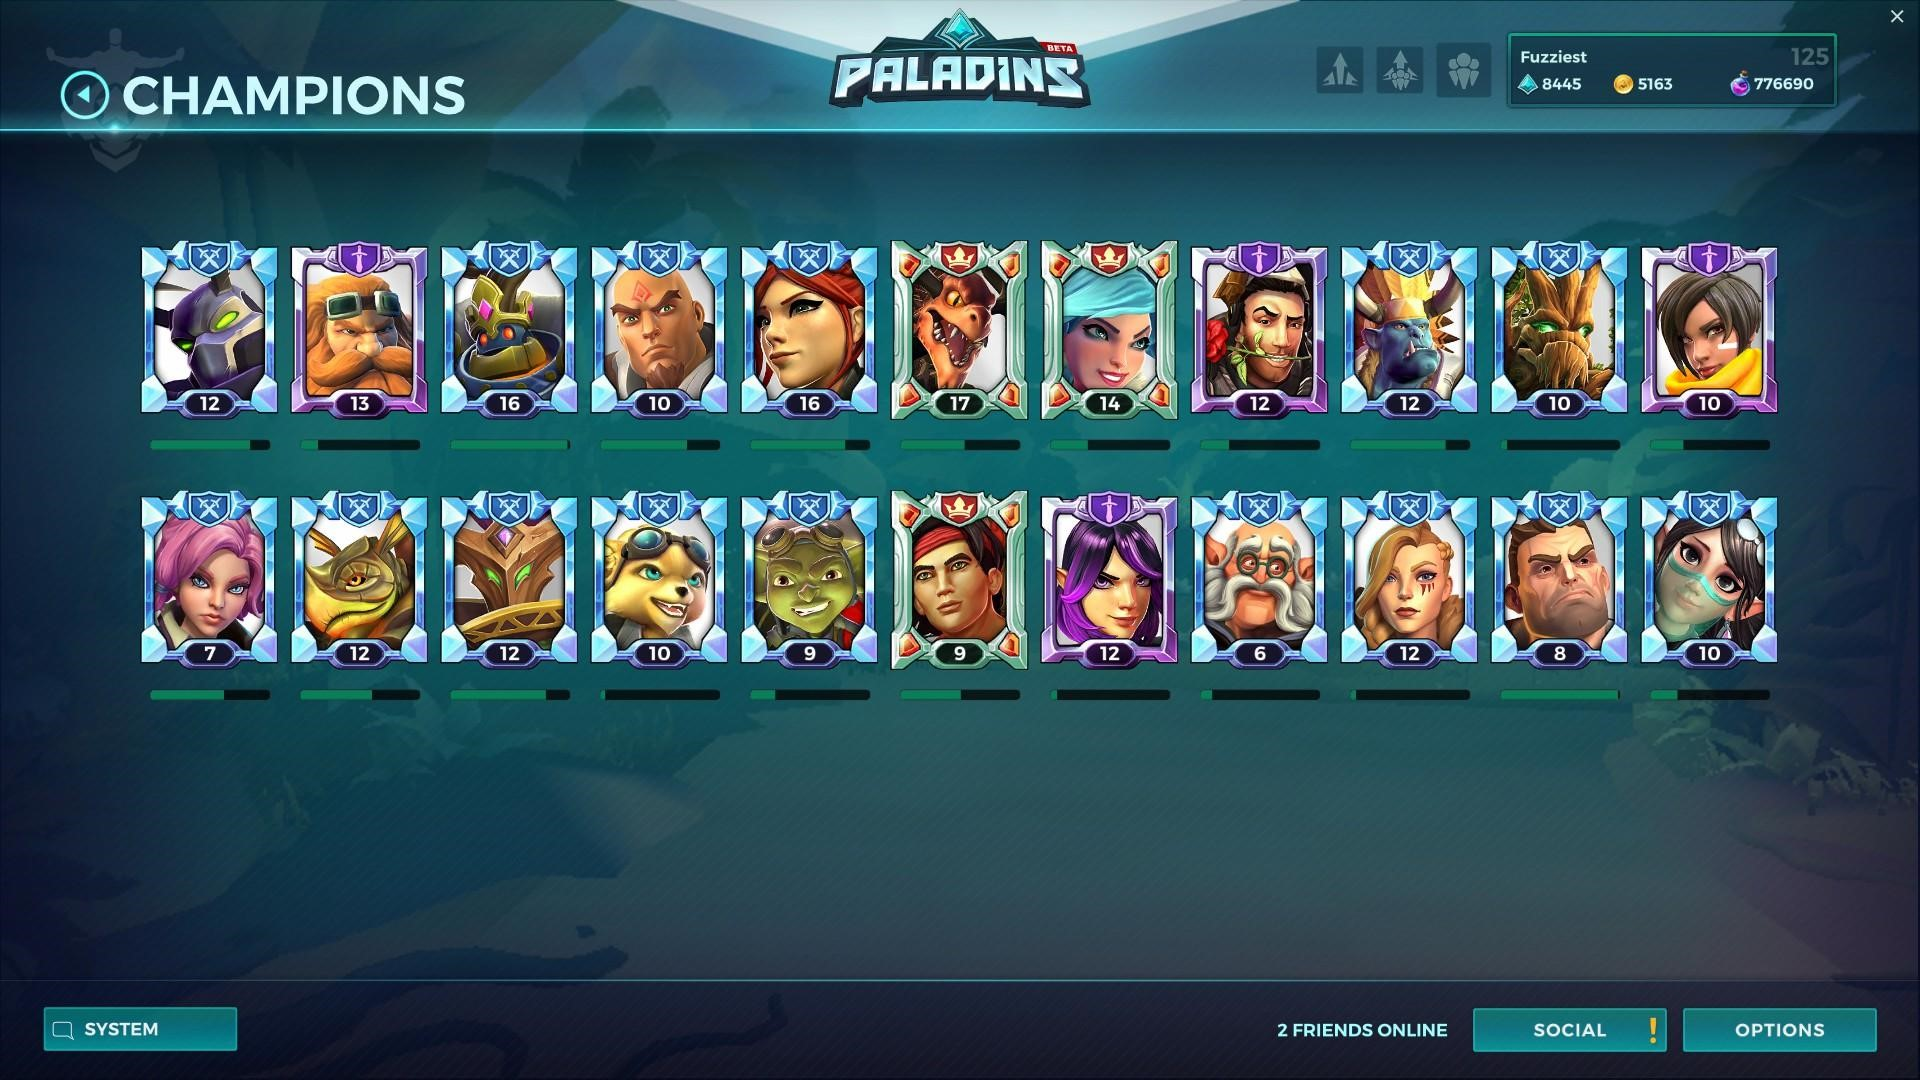 Steam Community :: Guide :: Why Paladins is losing players and how